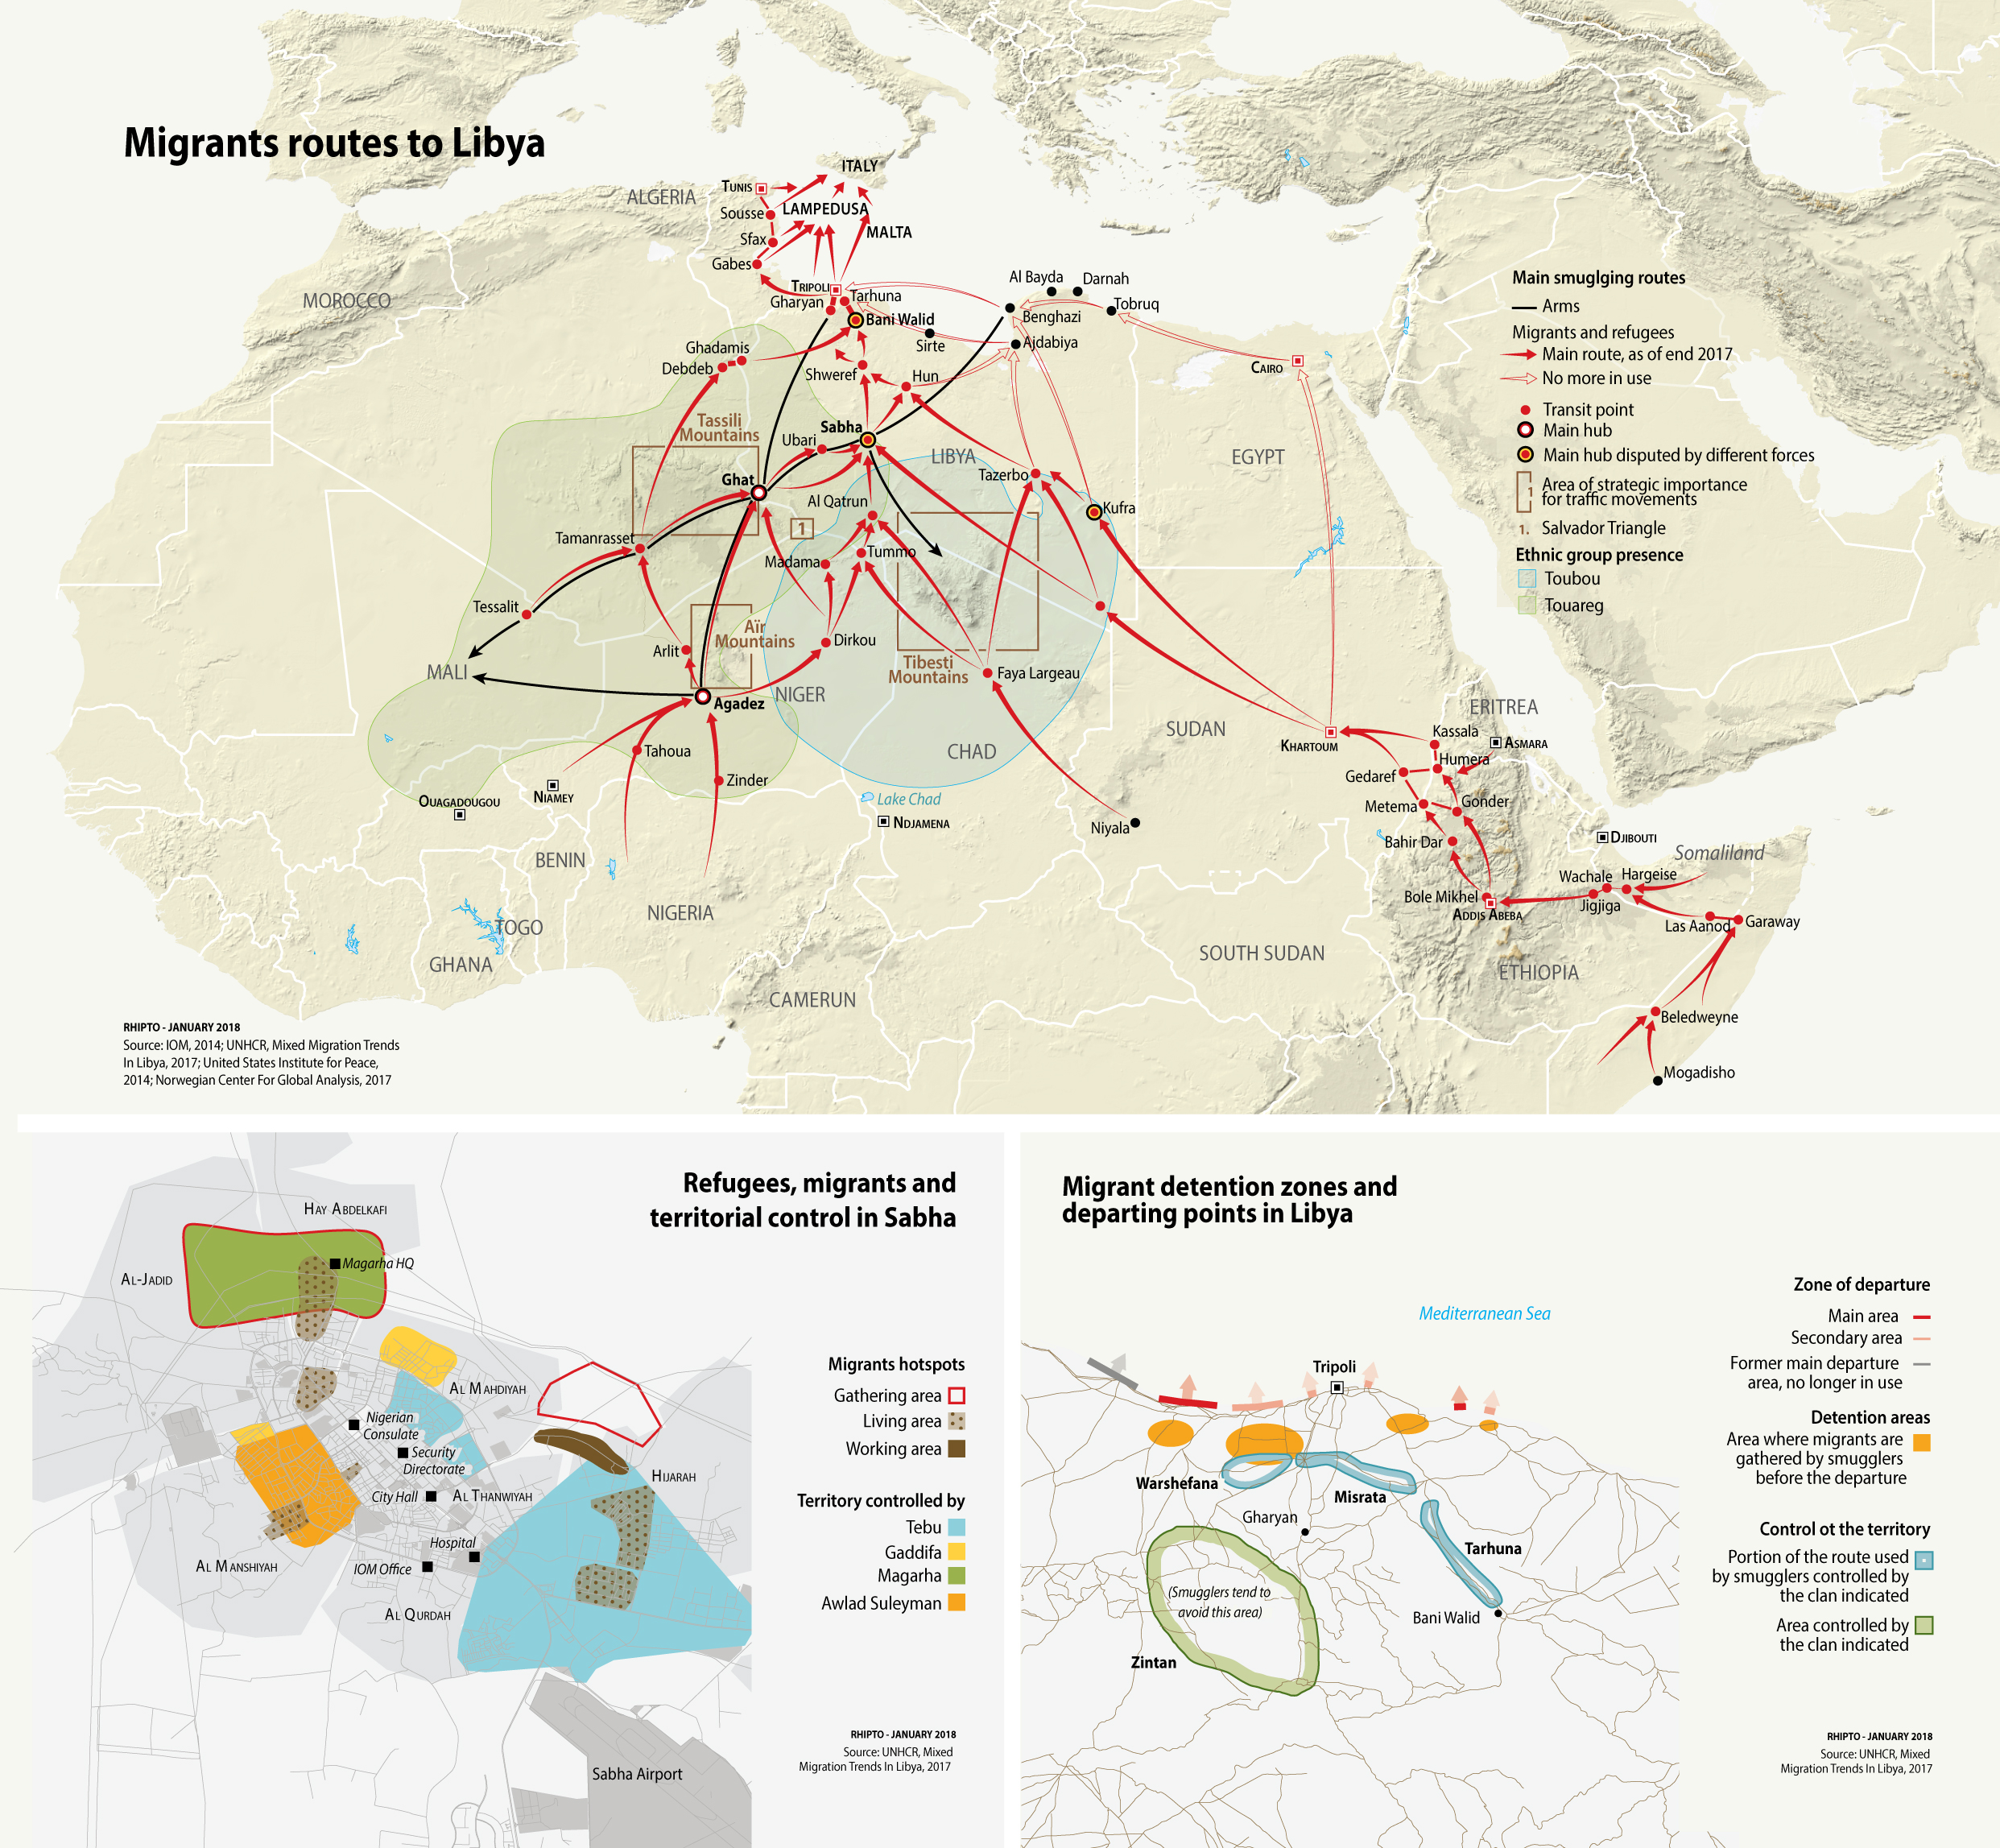 Migrants routes through Libya